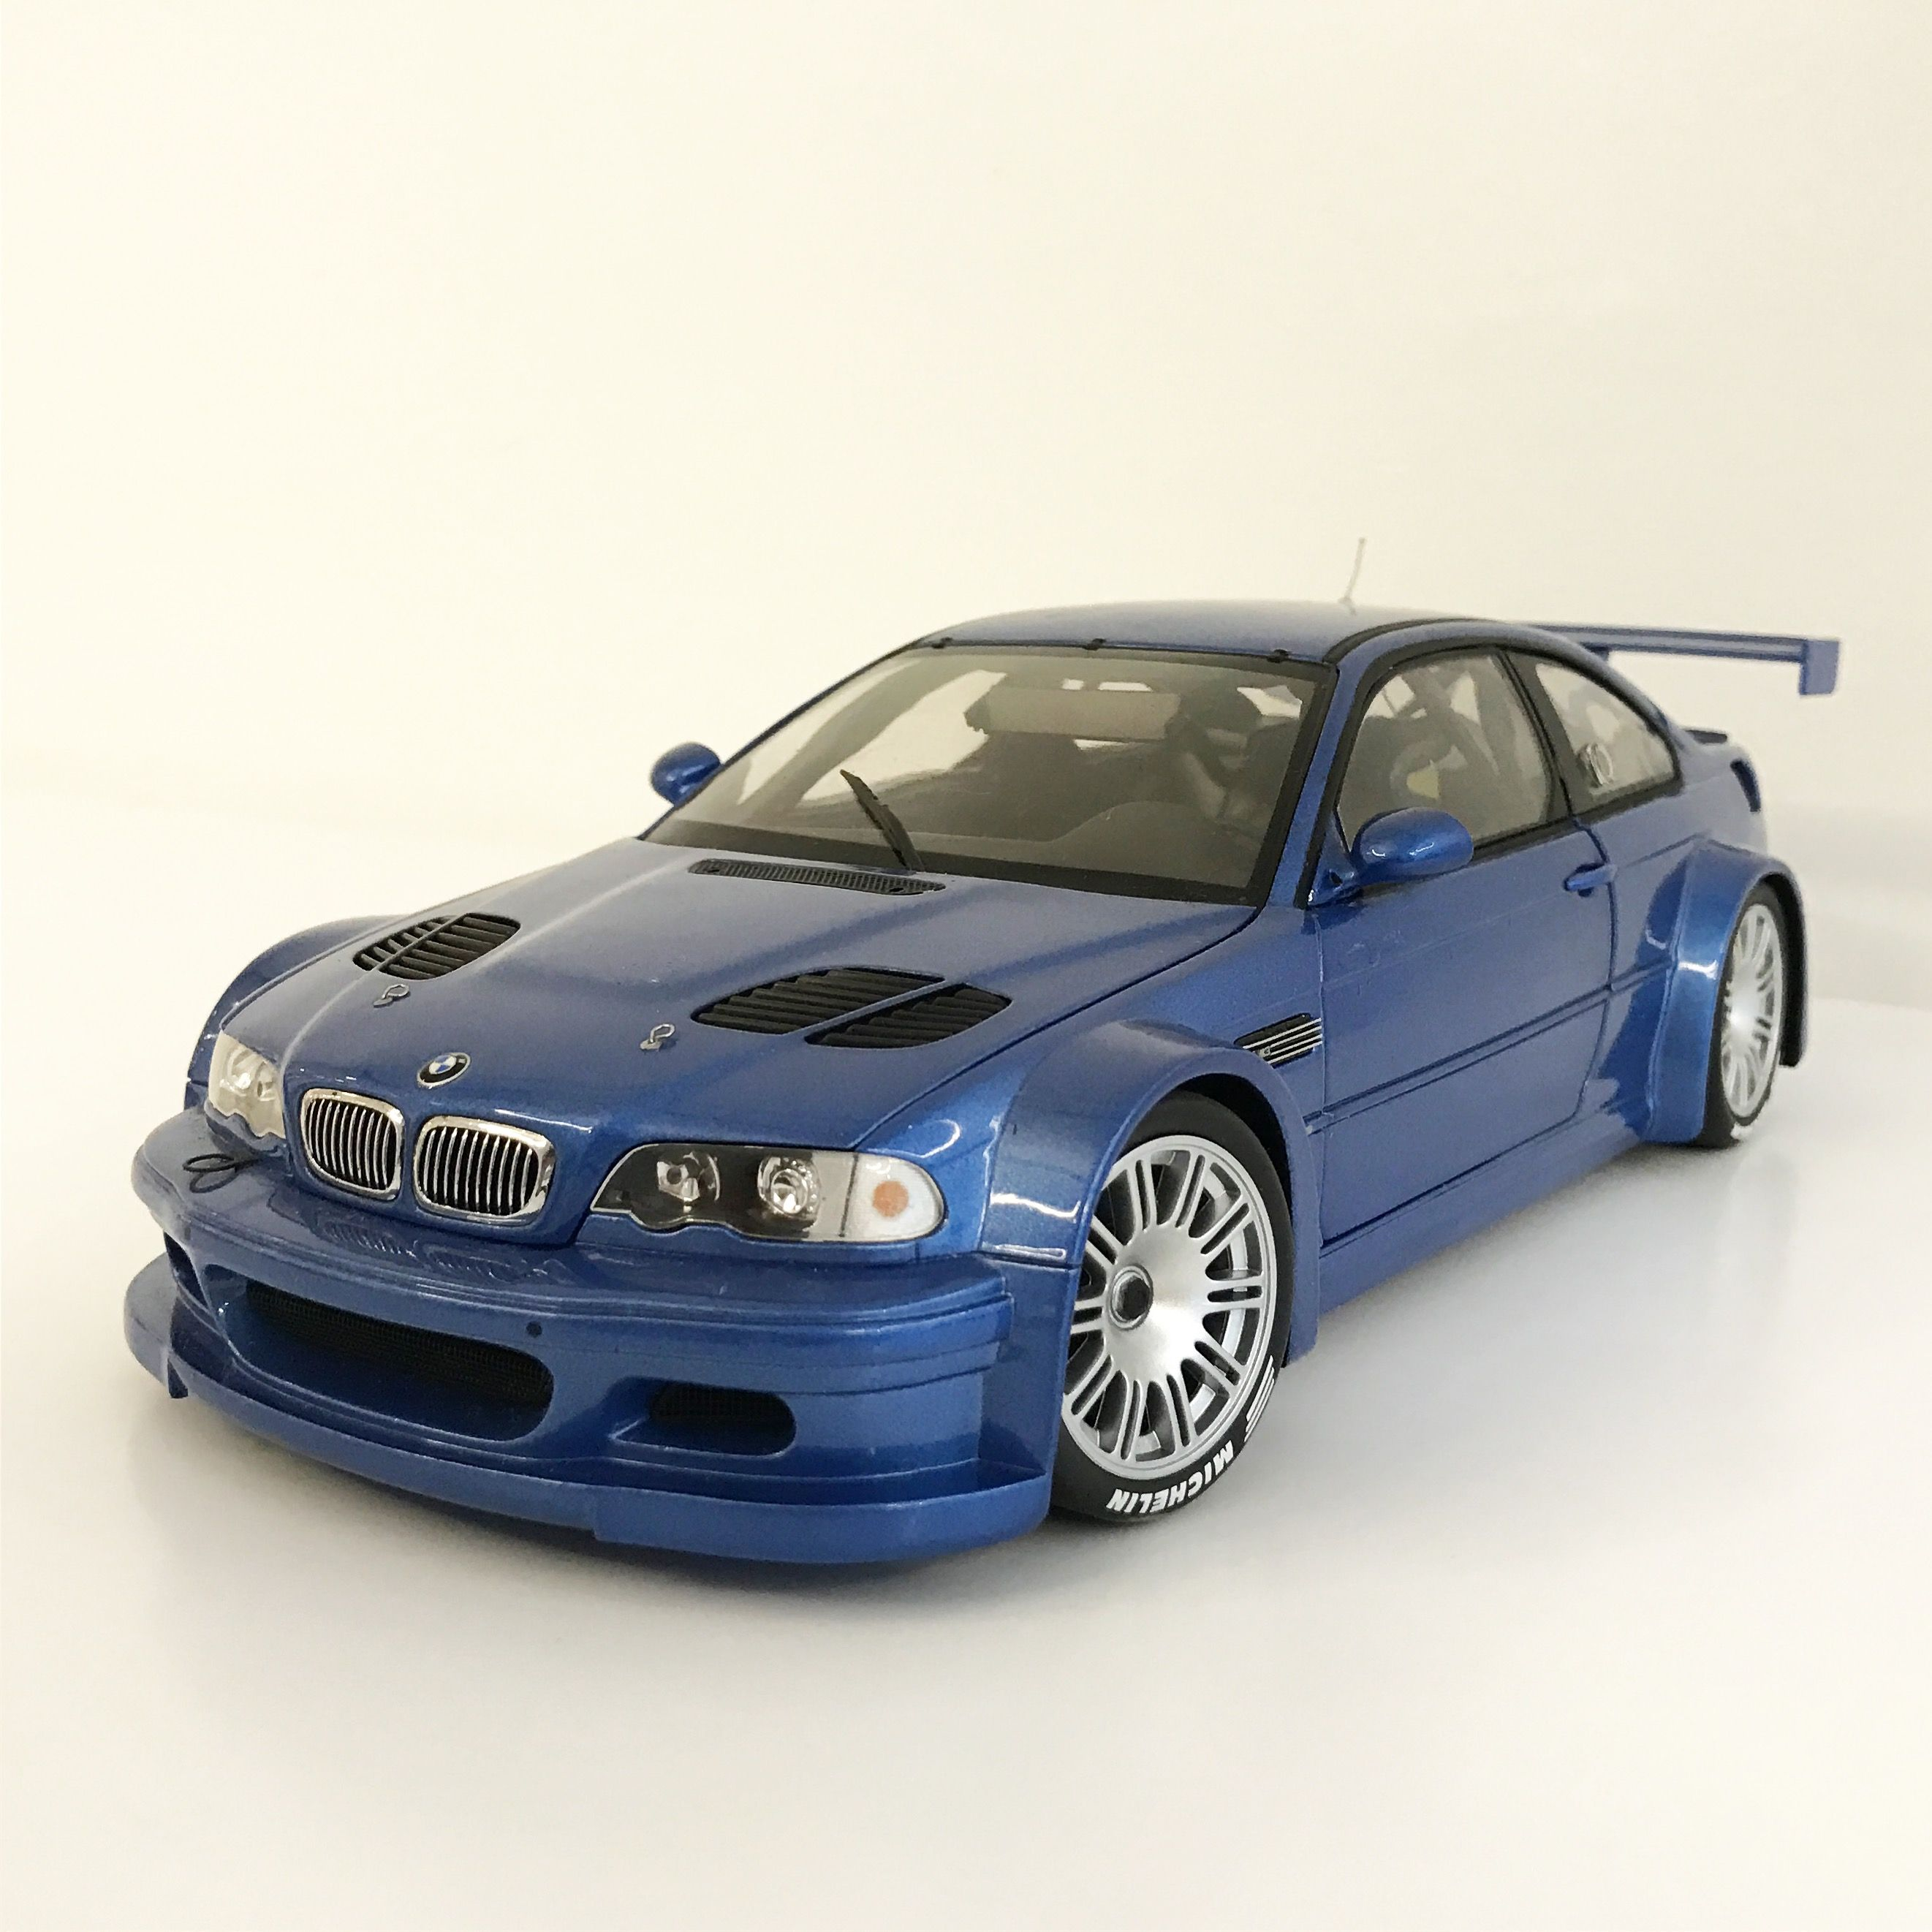 1:18 Minichamps Bmw M3 Gtr New Sealed Handsome Appearance Go Dynamic